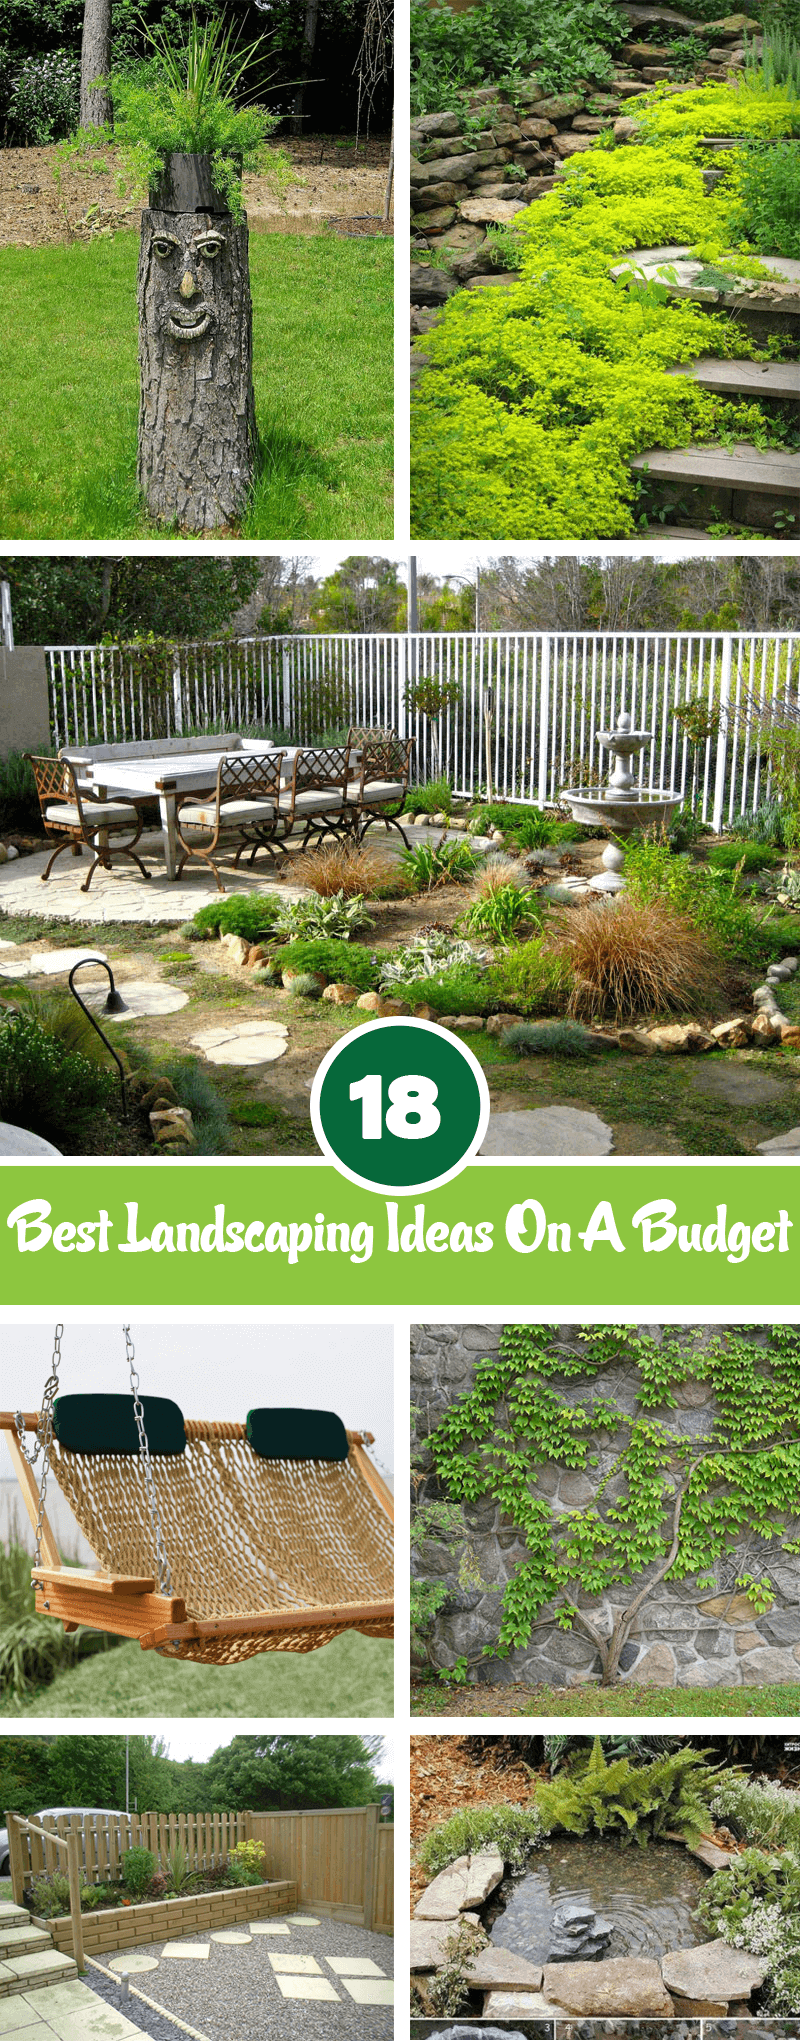 18 Inexpensive Landscaping Ideas For Your Backyard ... on Inexpensive Backyard Landscaping id=49248